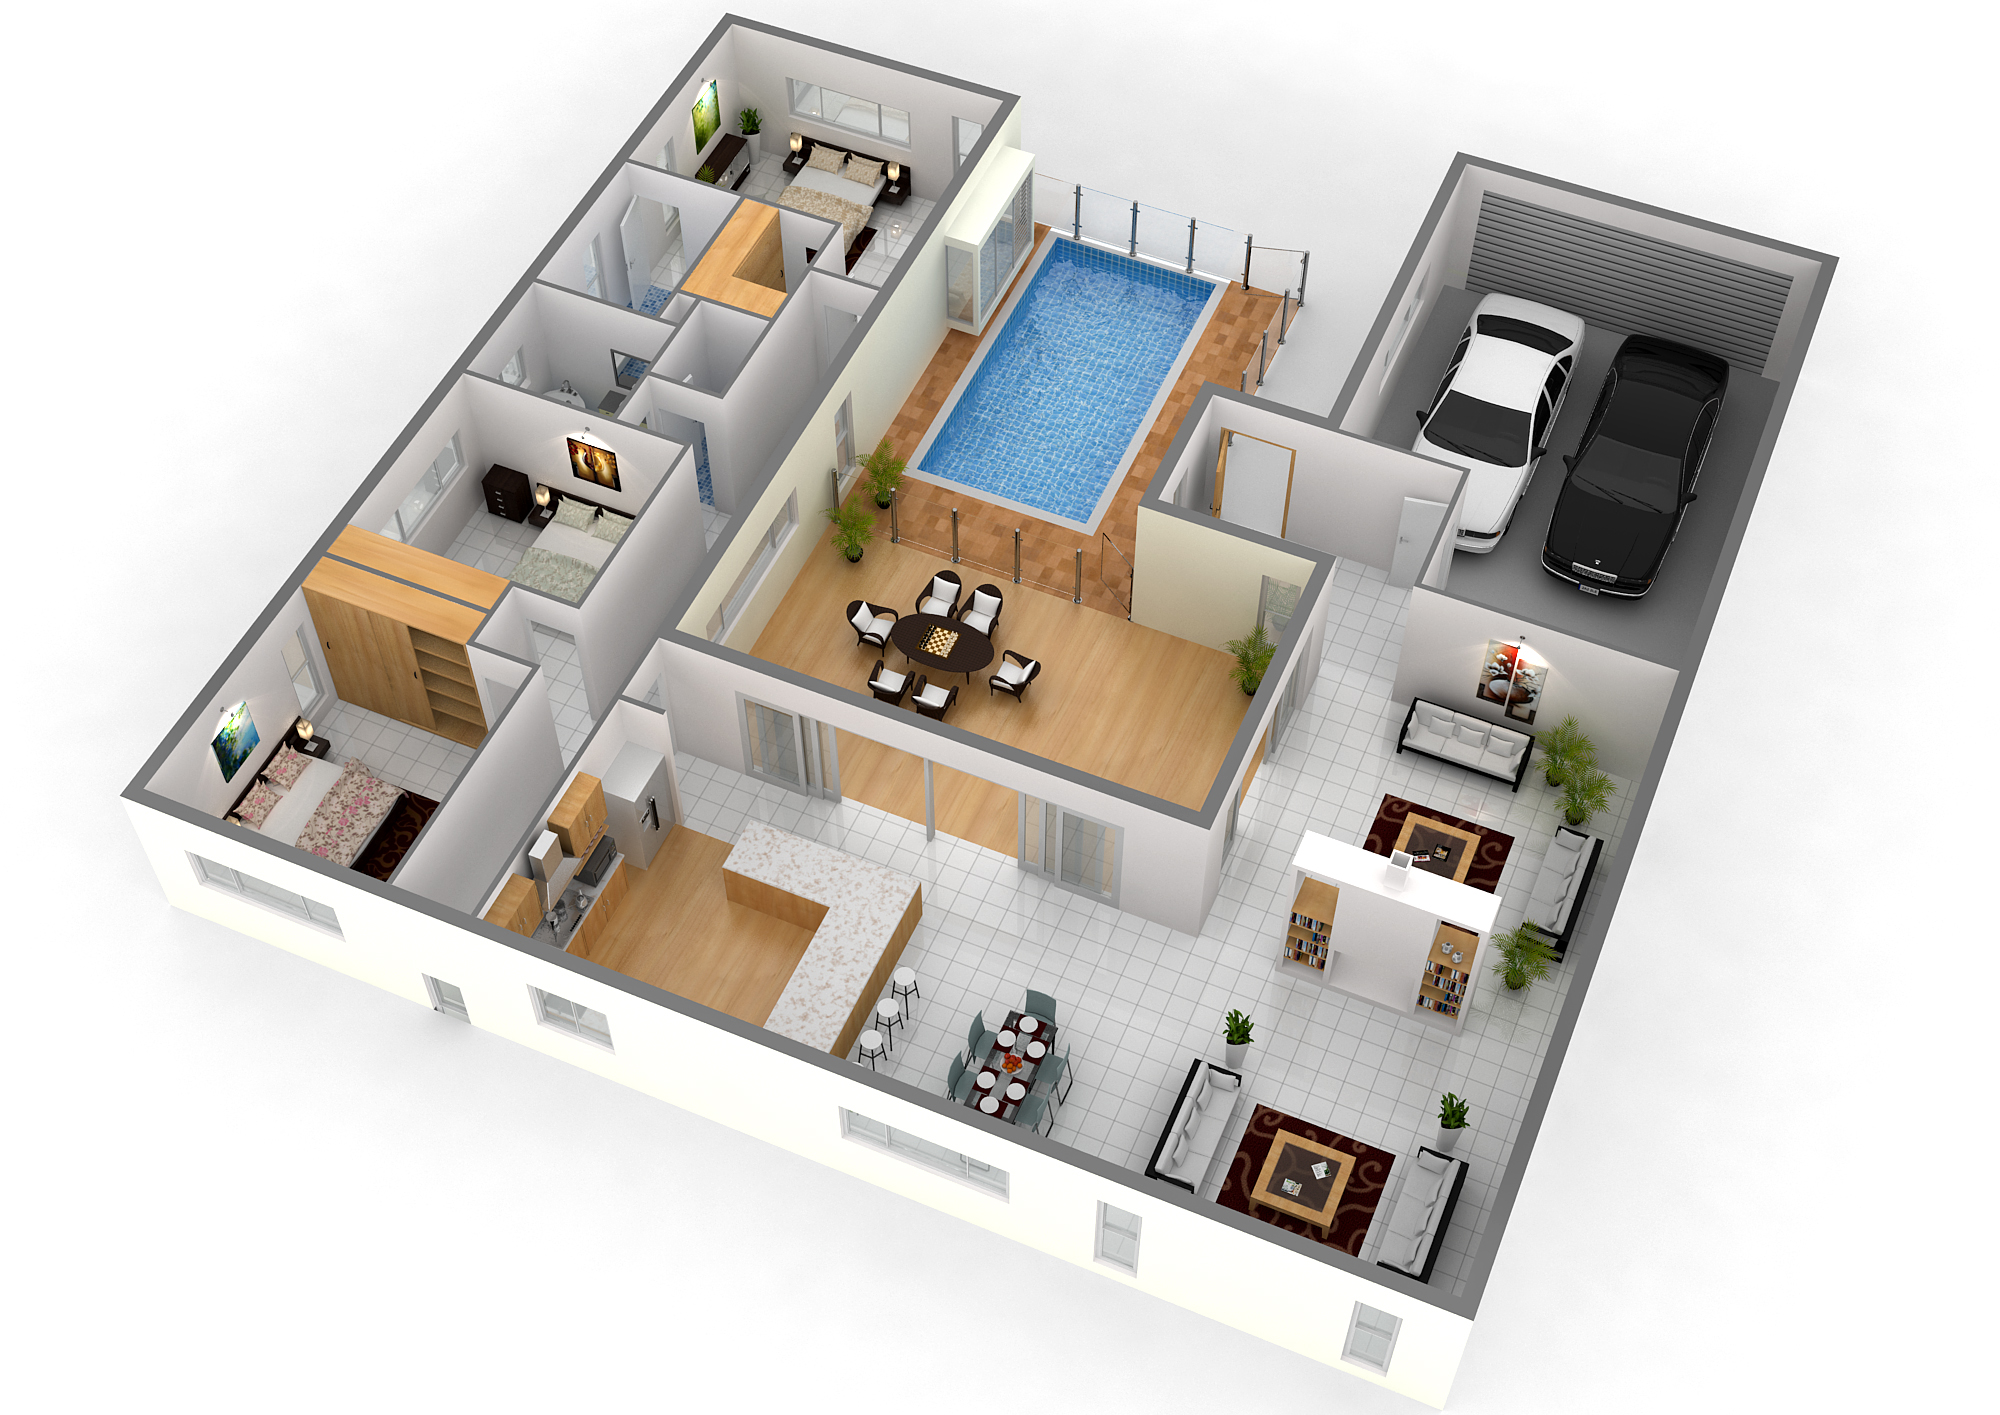 new-3d-house-blueprints-and-plans-with-3d-floor-plan-fig-tree-pocket-qld